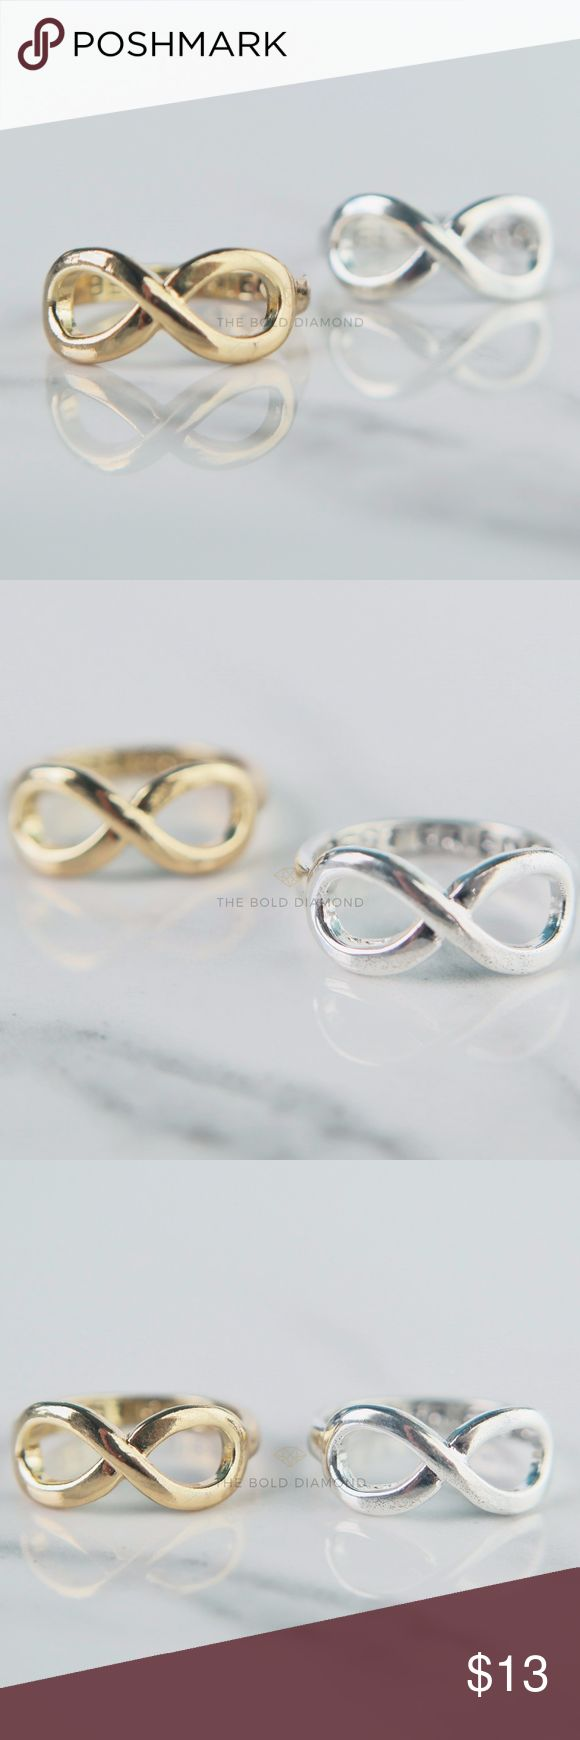 Best 25+ Best friend rings ideas on Pinterest